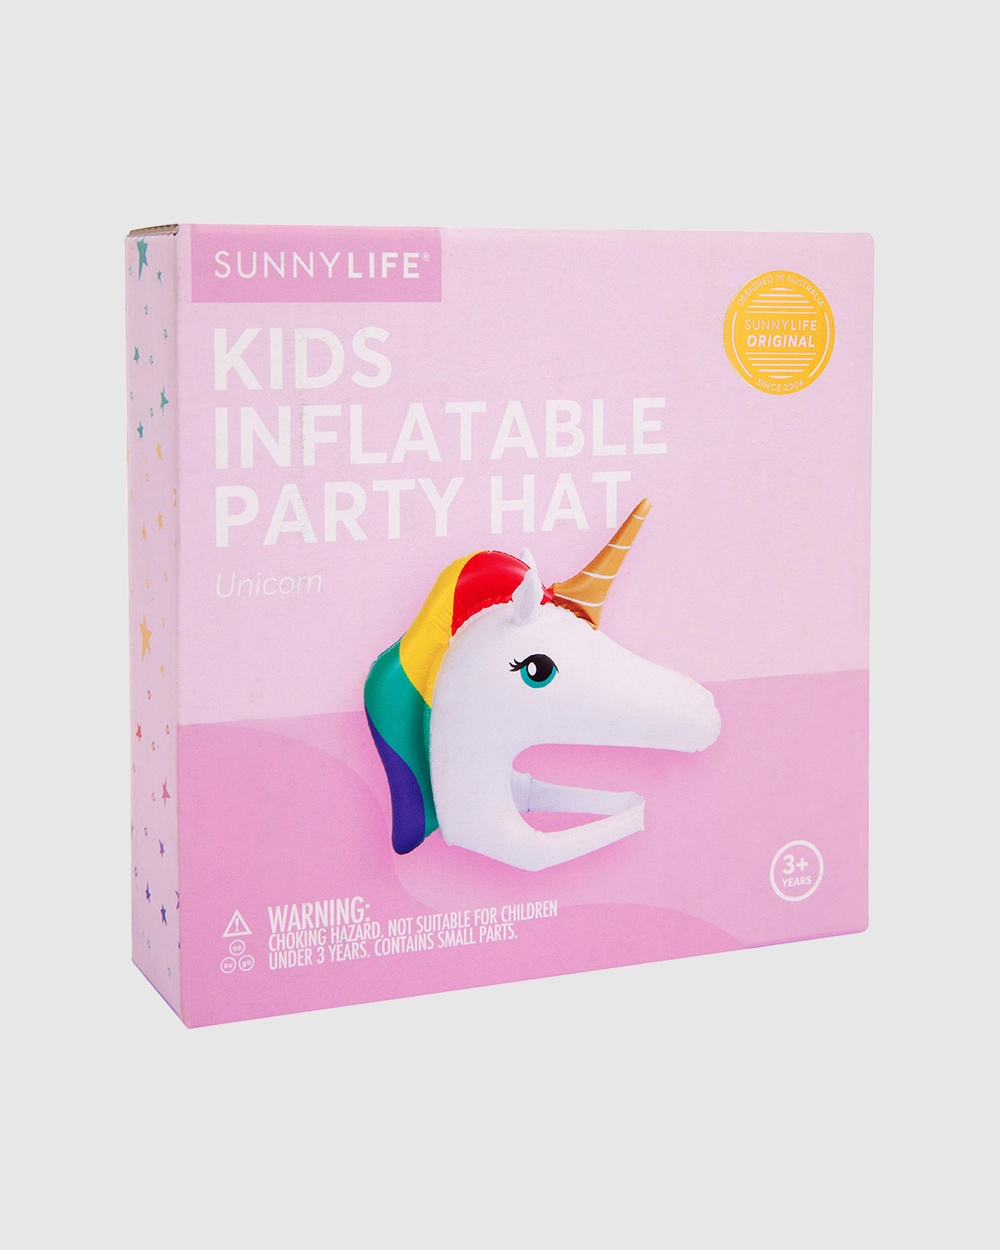 Sunnylife Inflatable Party Hat Accessories Unicorn